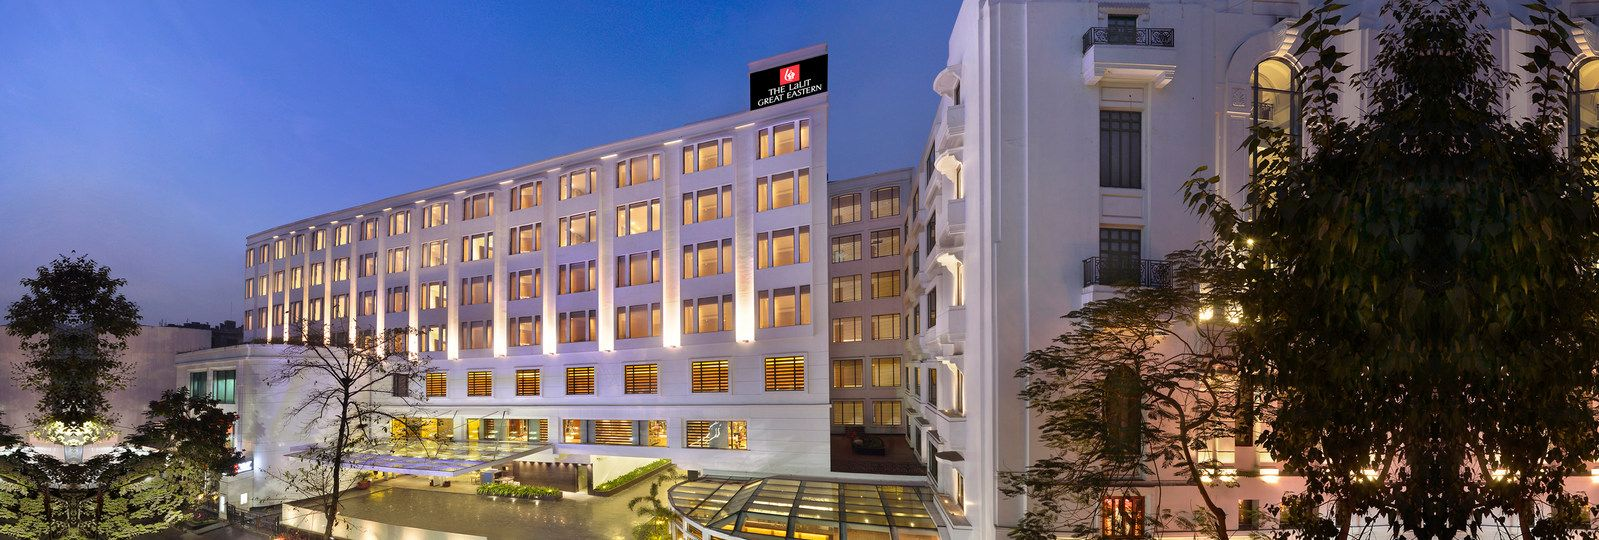 The Lalit Great Eastern Kolkata Official Website Relax In Our Luxury Hotel A Legendary Heritage With Superb Service And Facilities